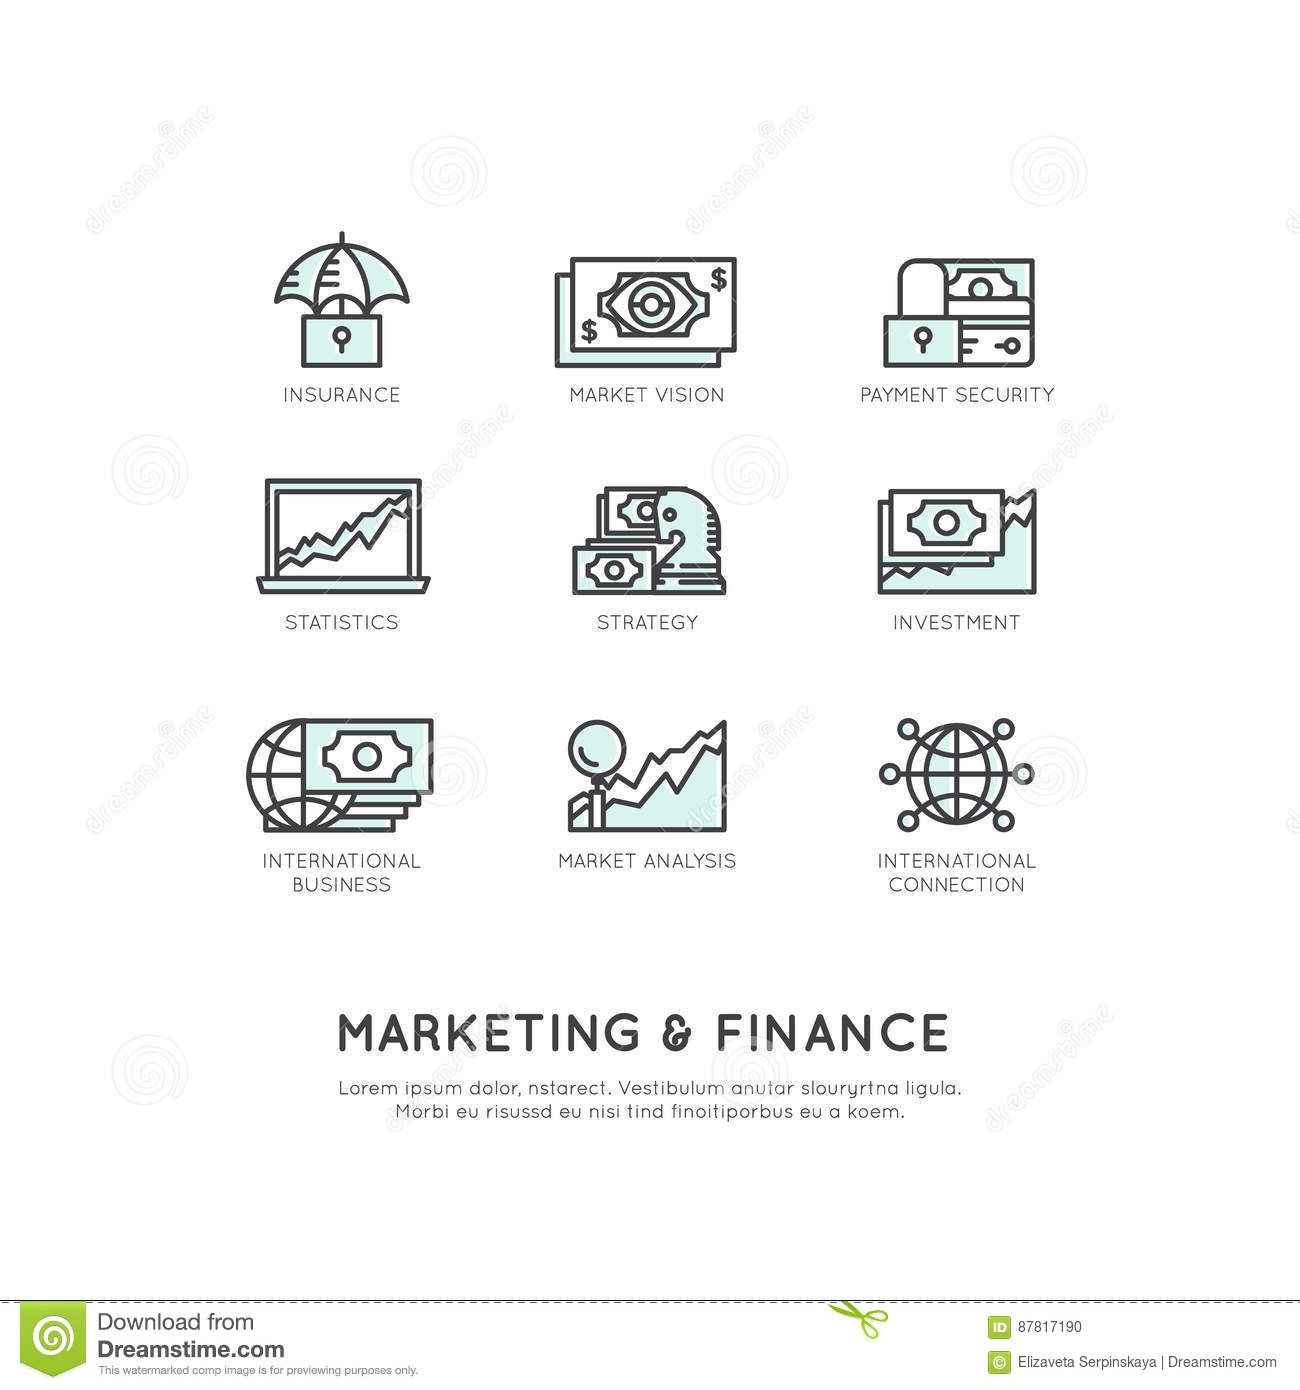 Illustration of Marketing and Finance, Business Vision, Investment, Management Process, Finance Job, Income, Revenue Source